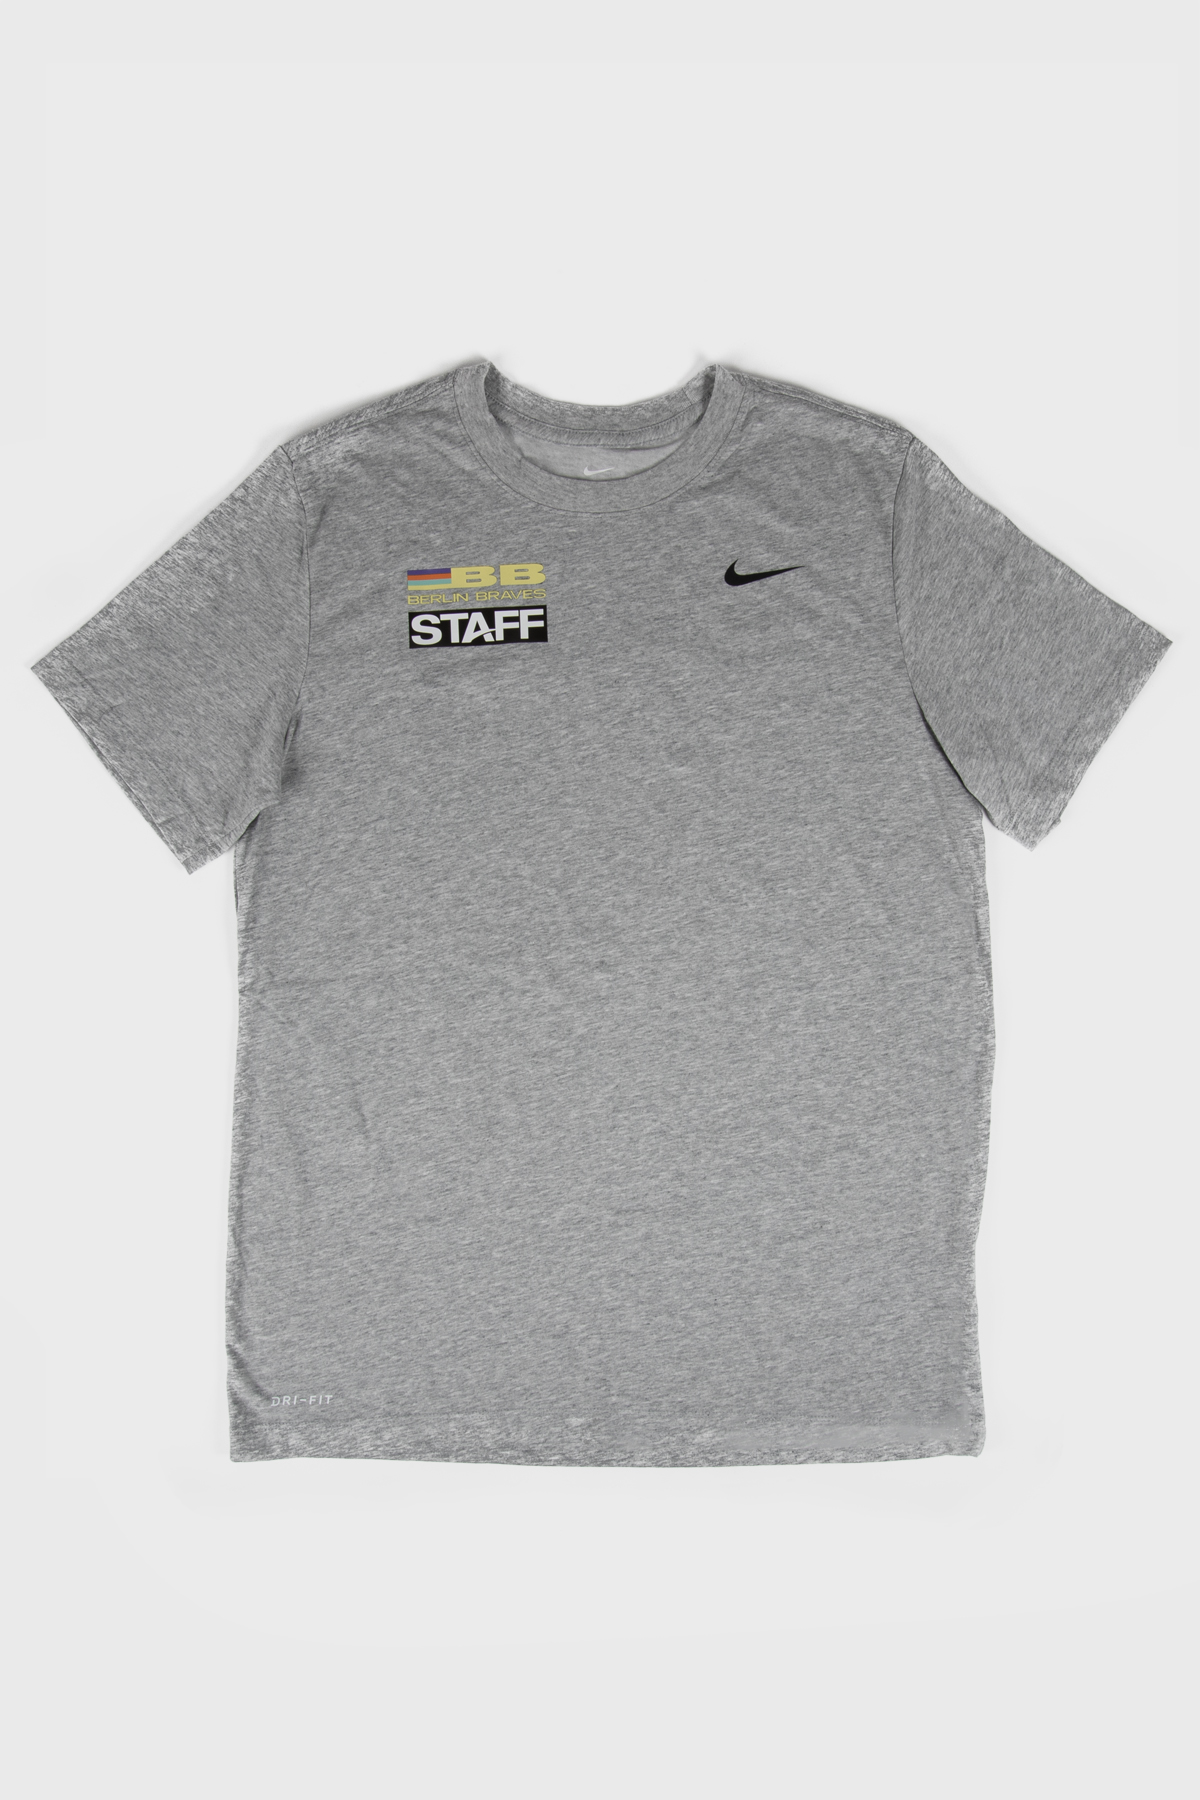 Berlin braves - Nike Braves TV staff Tee - Grey